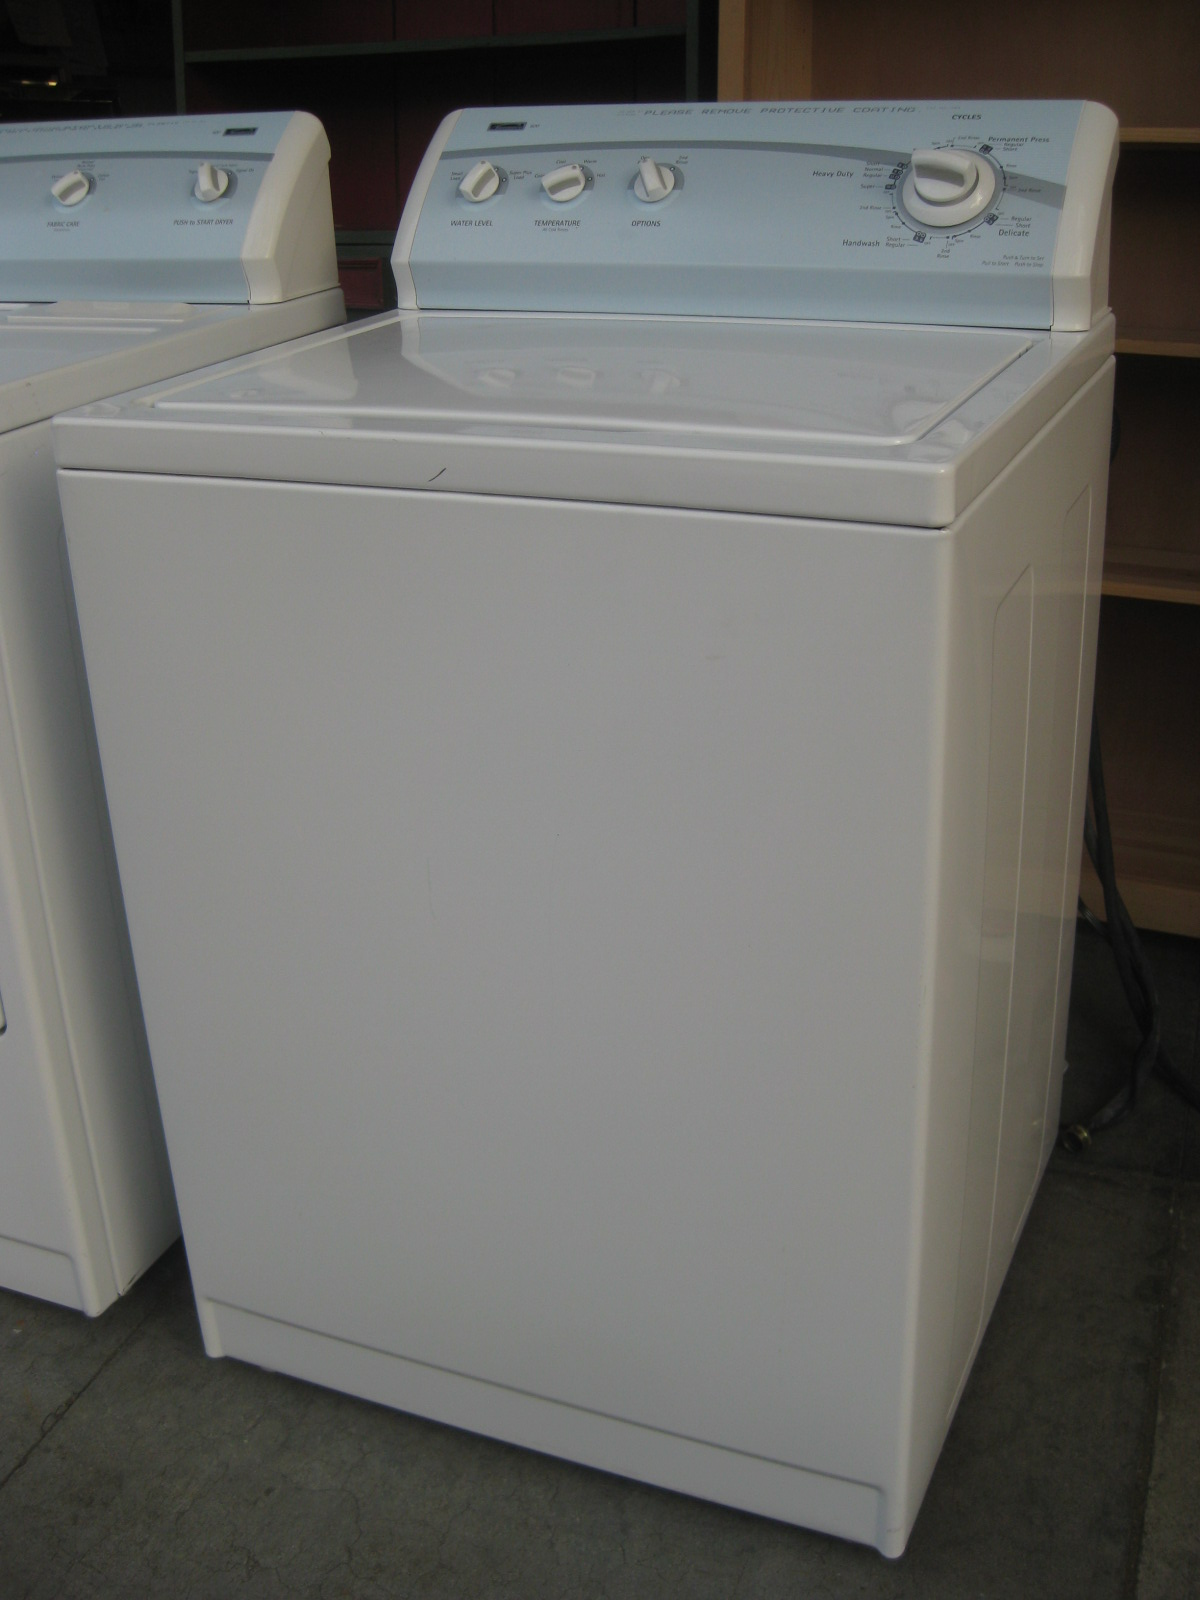 Whirlpool Dryer Belt Diagram Together With Kenmore 70 Series Dryer